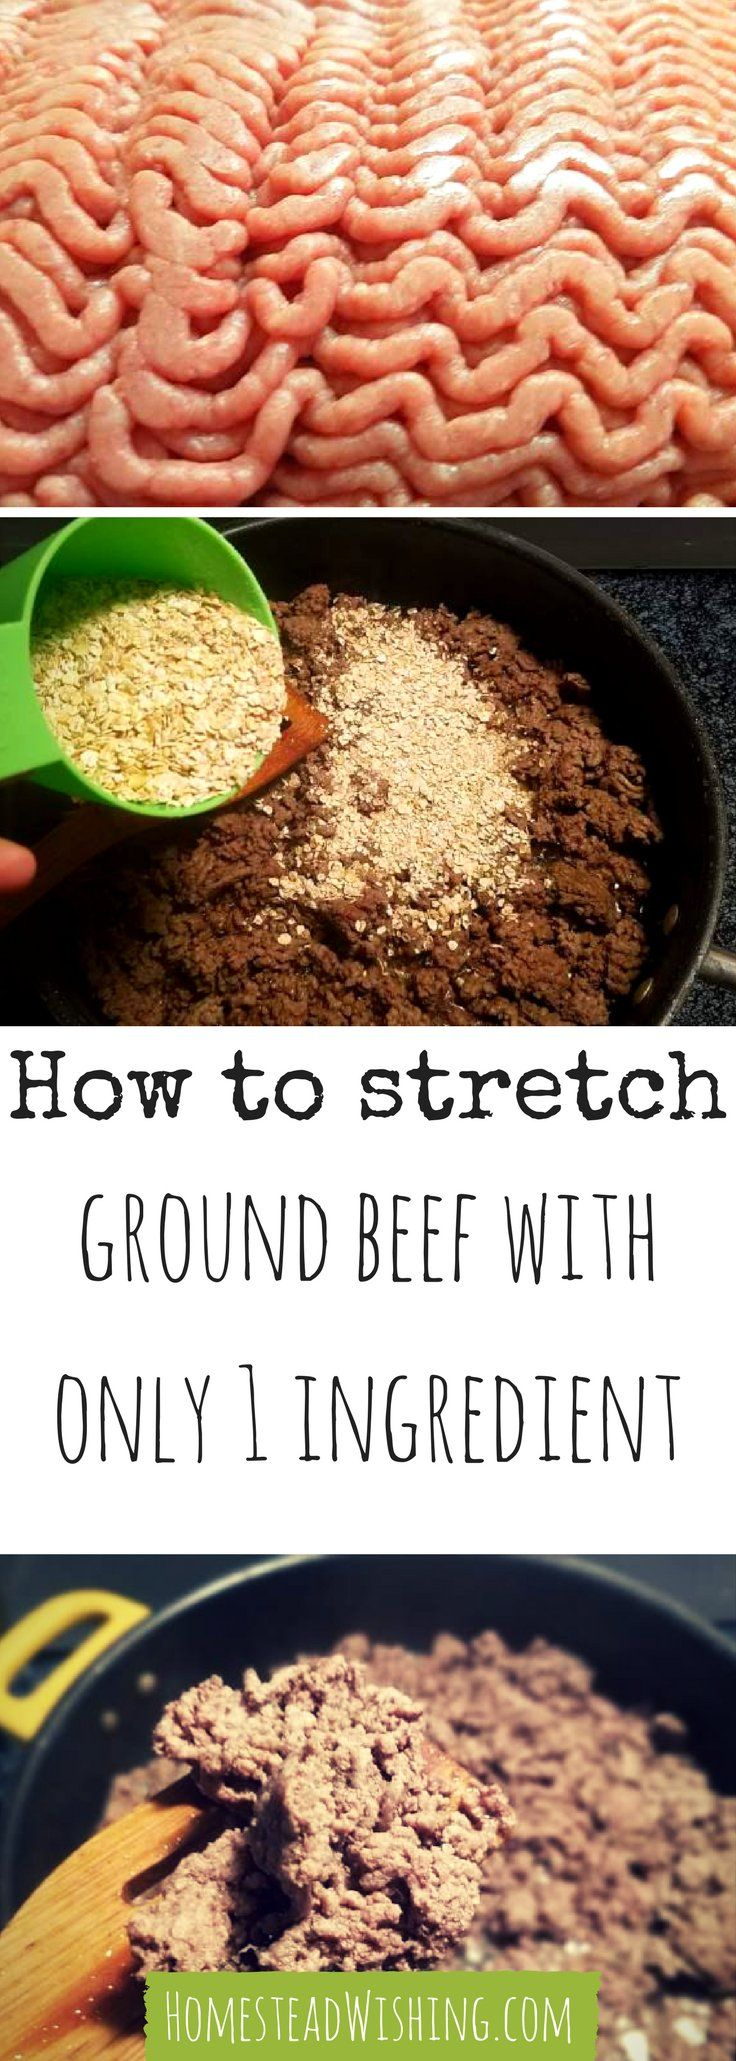 Stretching ground beef. Use one simple ingredient for stretching ground beef. It is simple cheap, and a great way to stretch your dollar. Meat prices are only going to get worse.